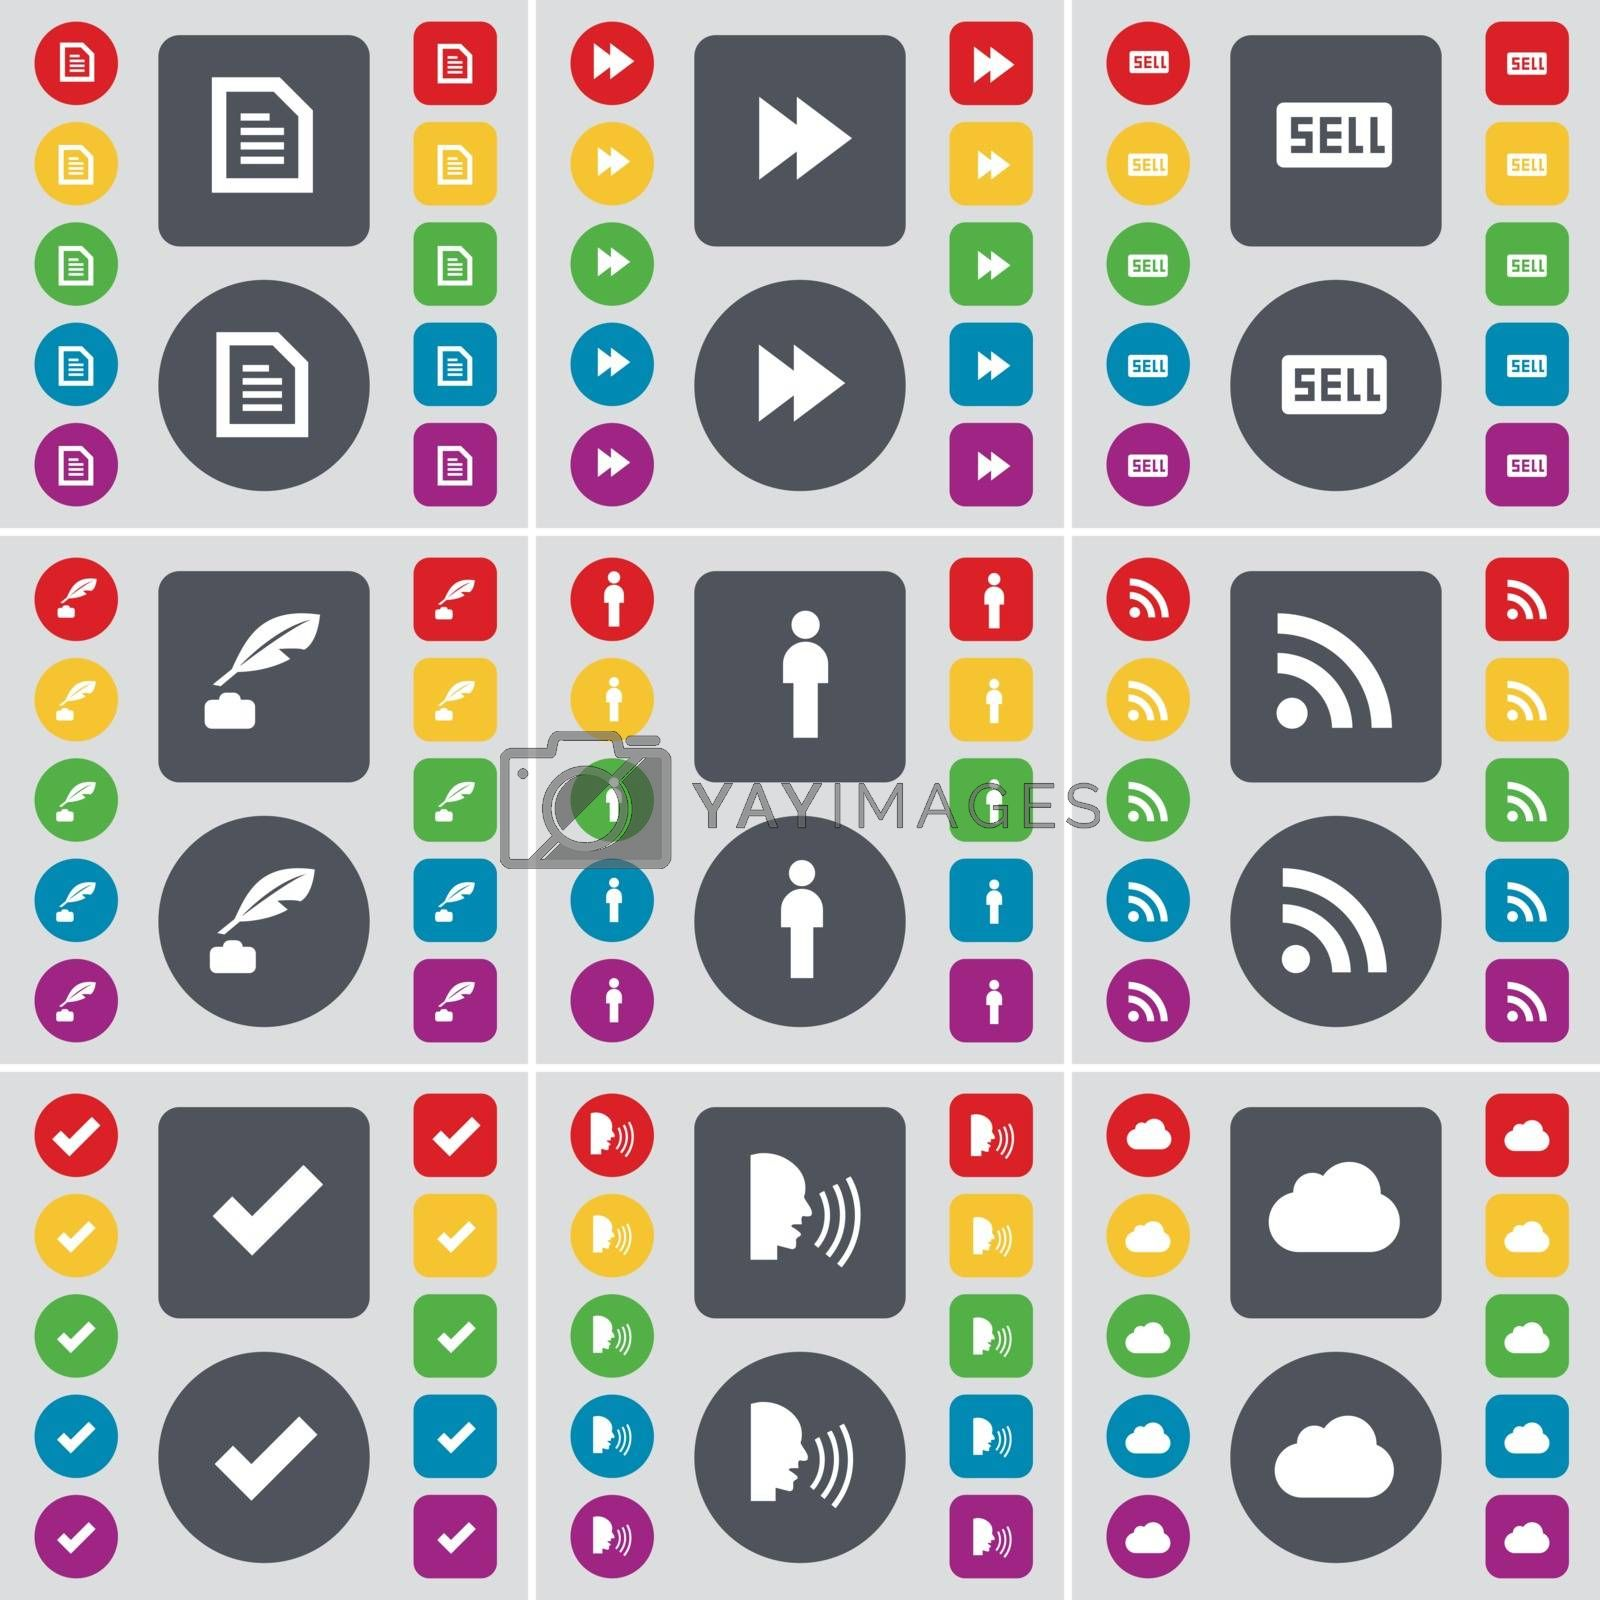 Royalty free image of Text file, Rewind, Sell, Ink pot, Silhouette, RSS, Tick, Talk, Cloud icon symbol. A large set of flat, colored buttons for your design. Vector by serhii_lohvyniuk